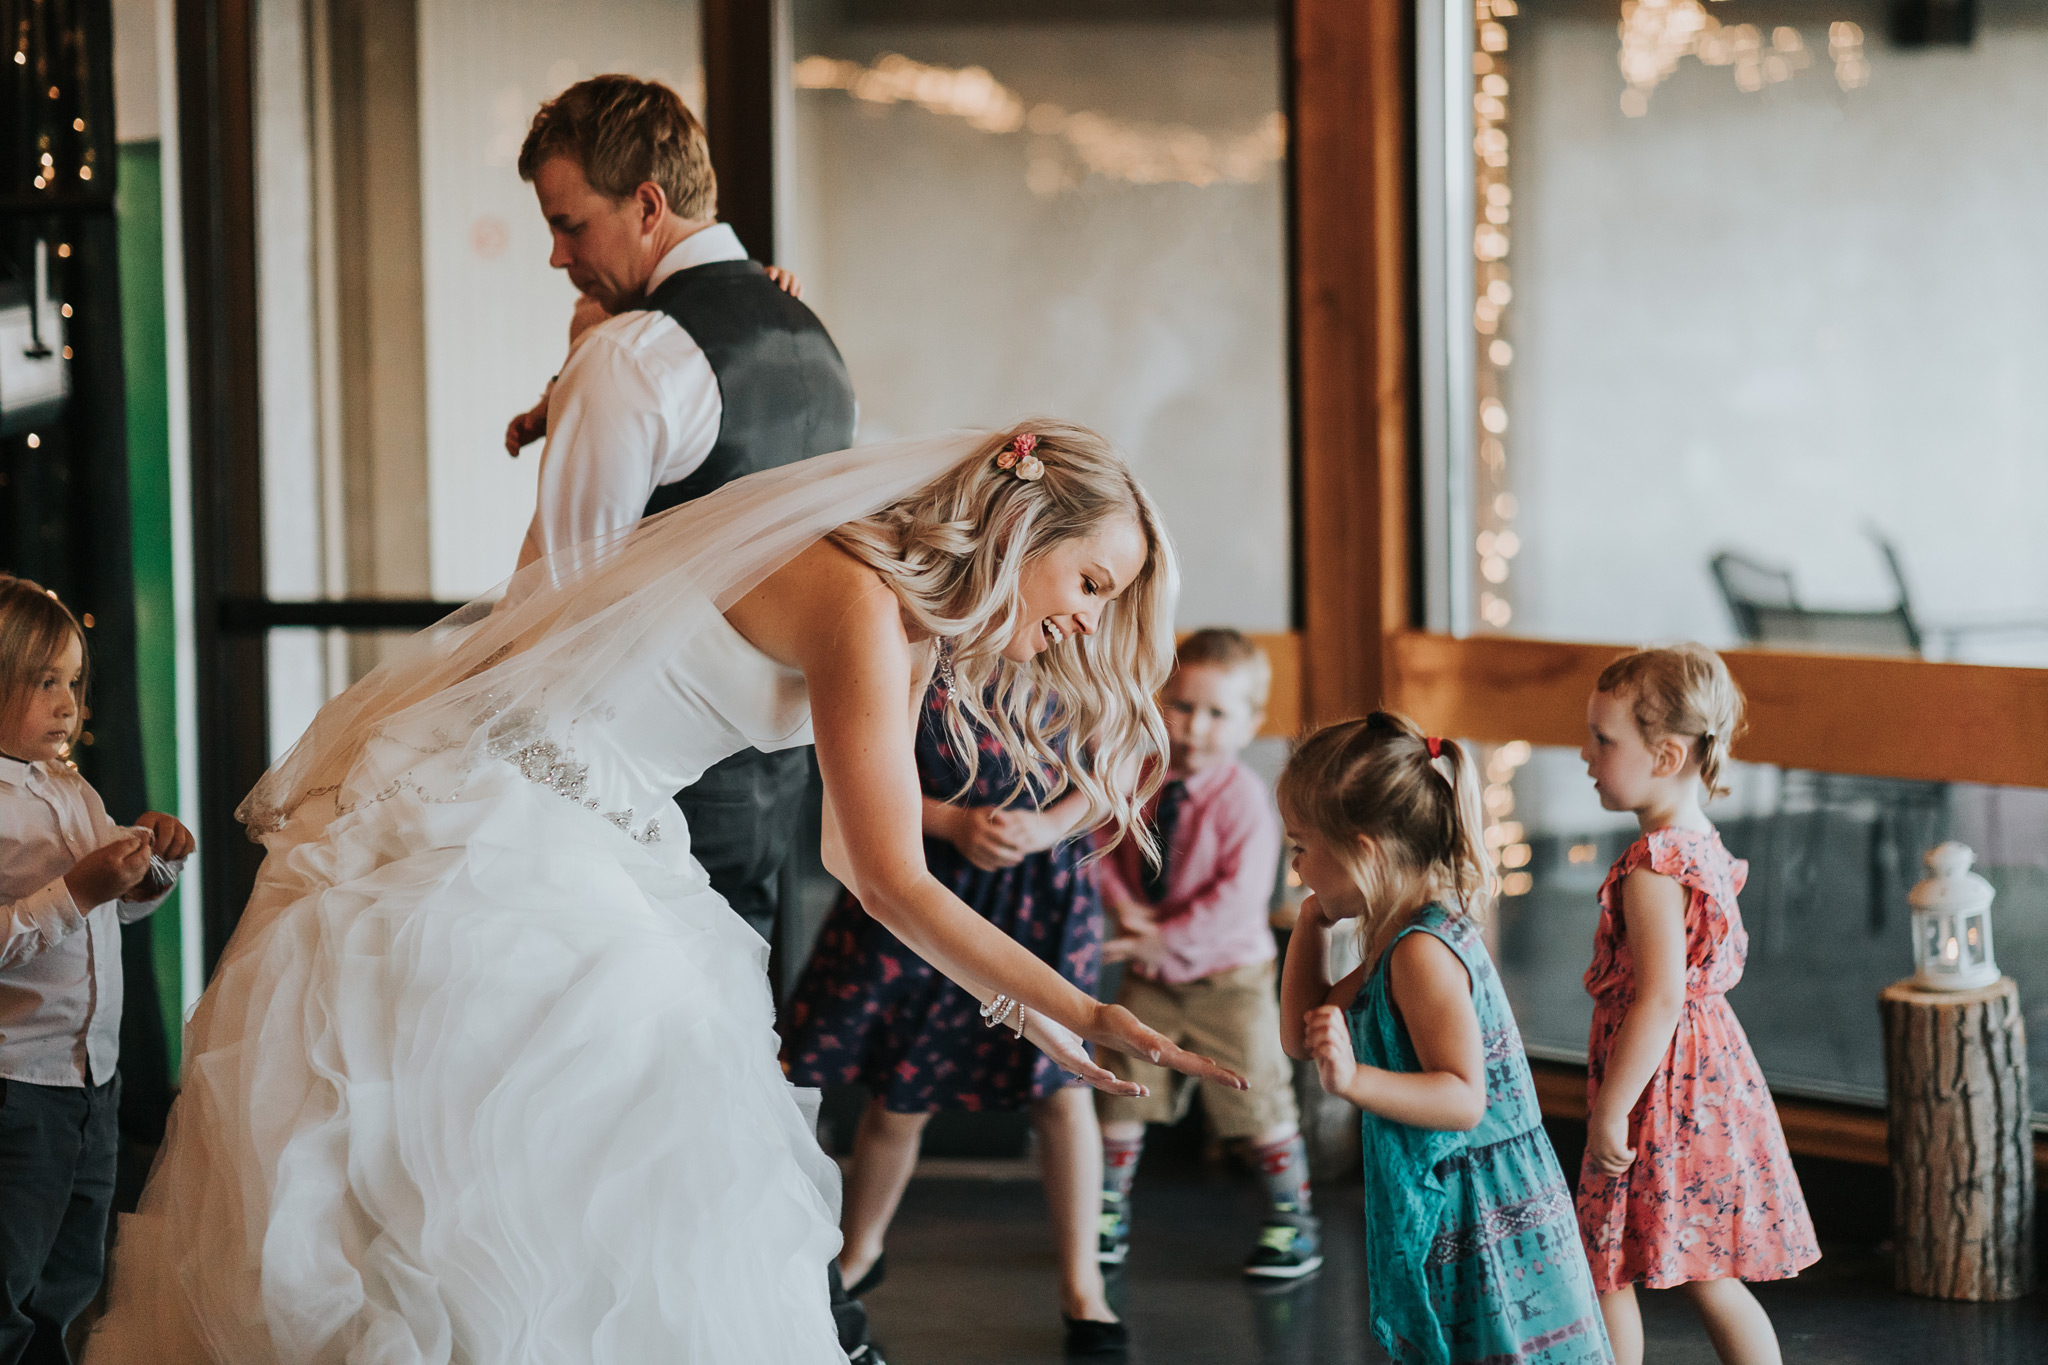 bride high fives girl after dancing at the reception